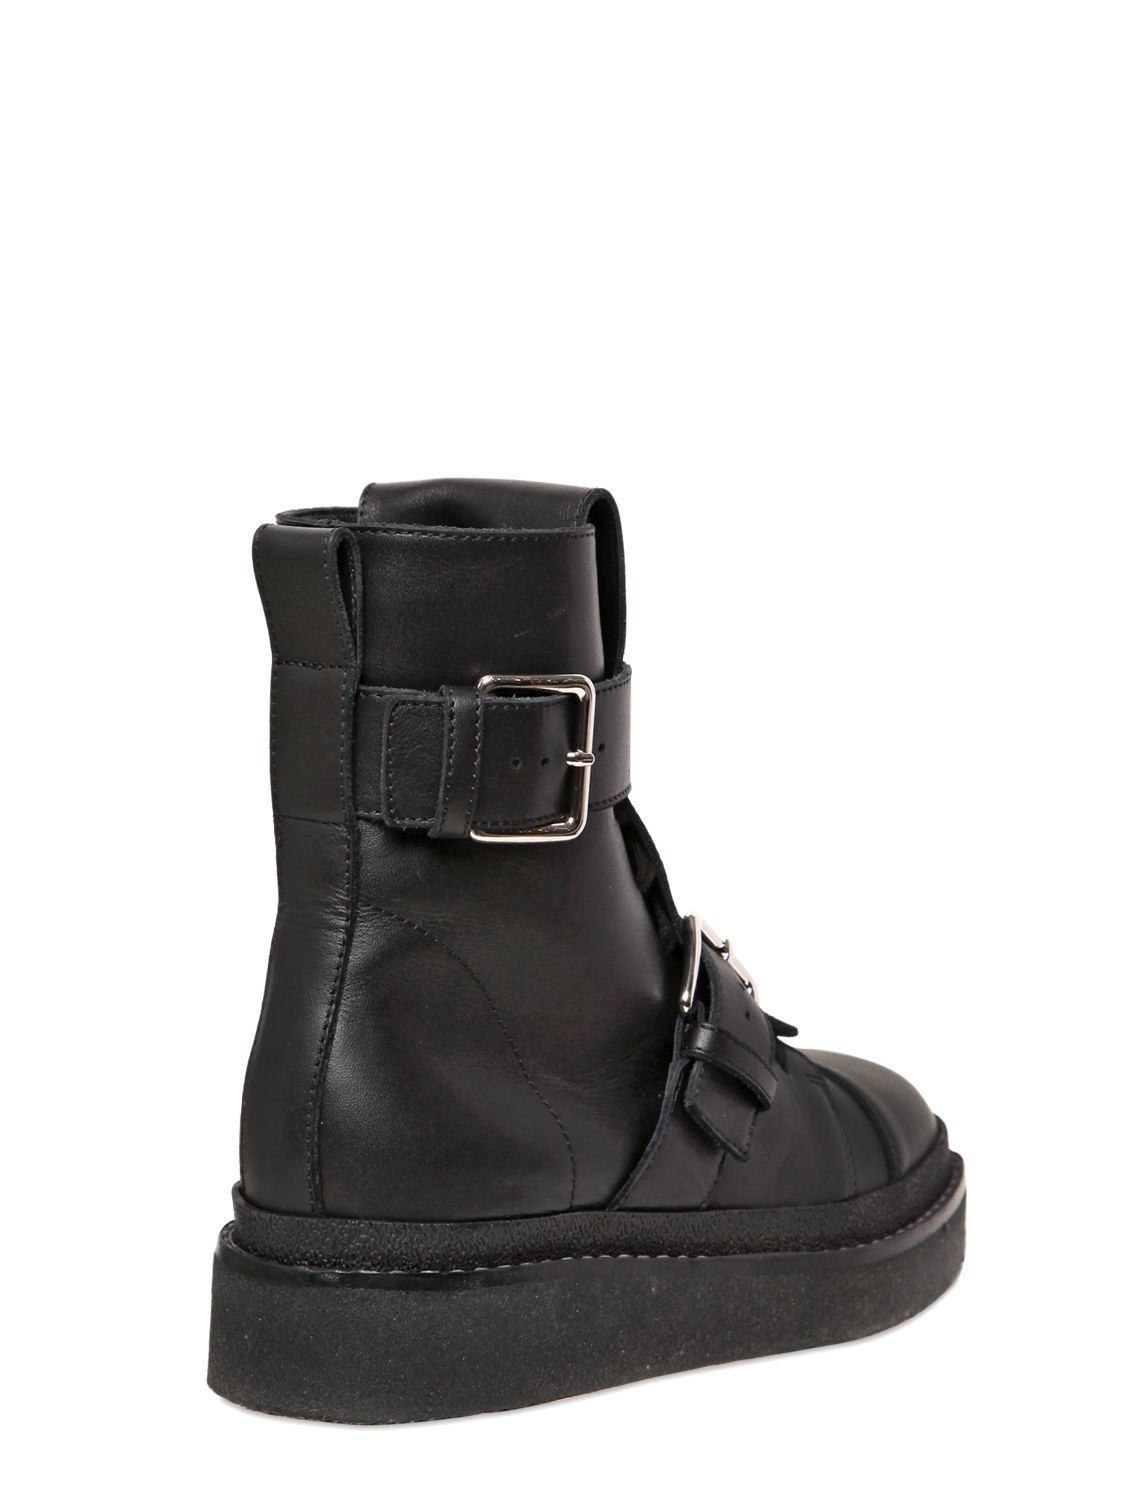 Sale Pay With Paypal Best Seller Marni Leather Biker Boots a0YF3d